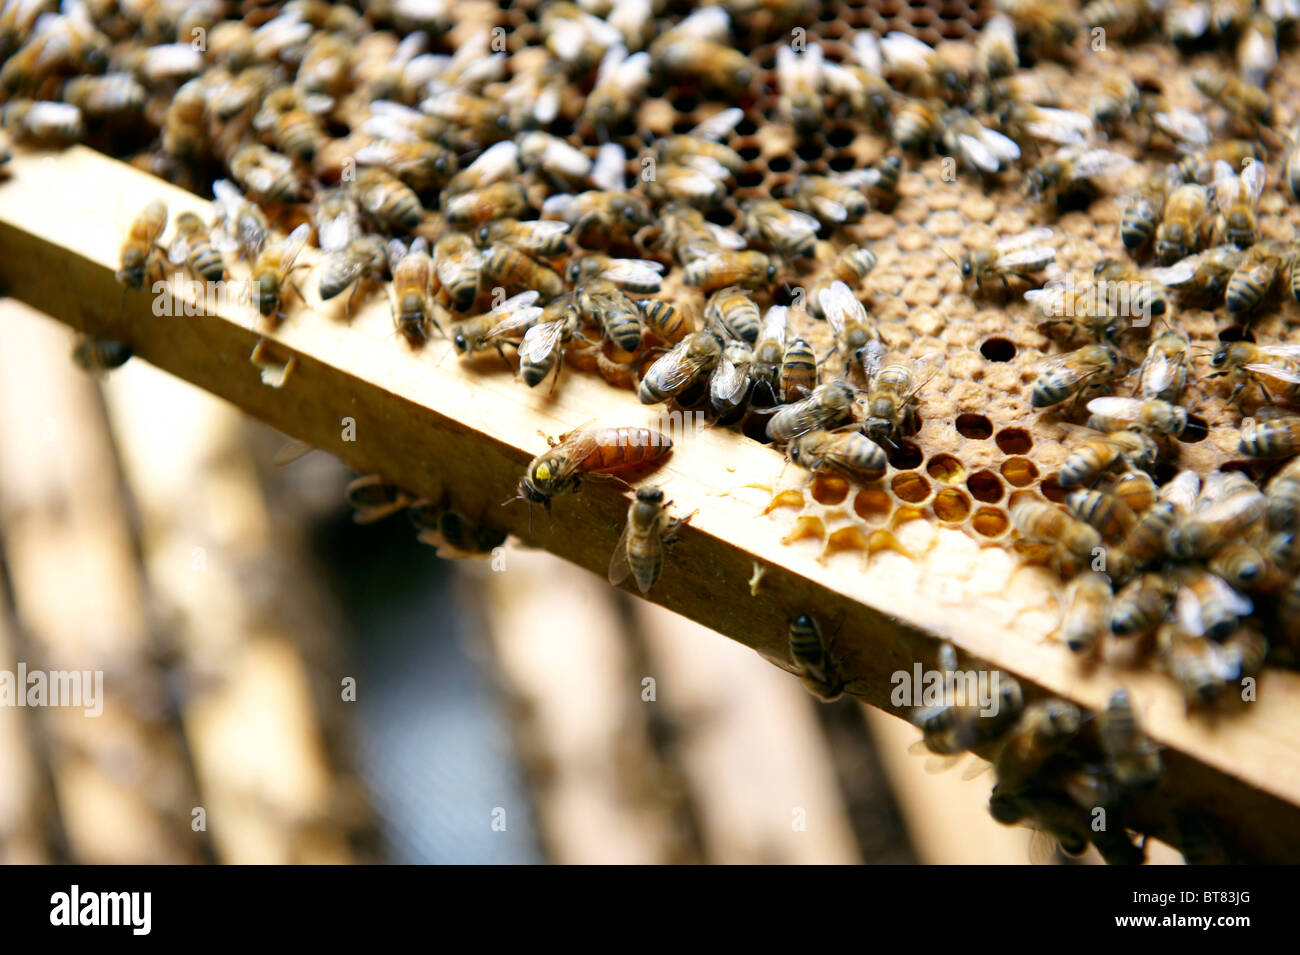 A Queen bee on the edge of a frame of brood from a beehive, surrounded by worker bees. - Stock Image